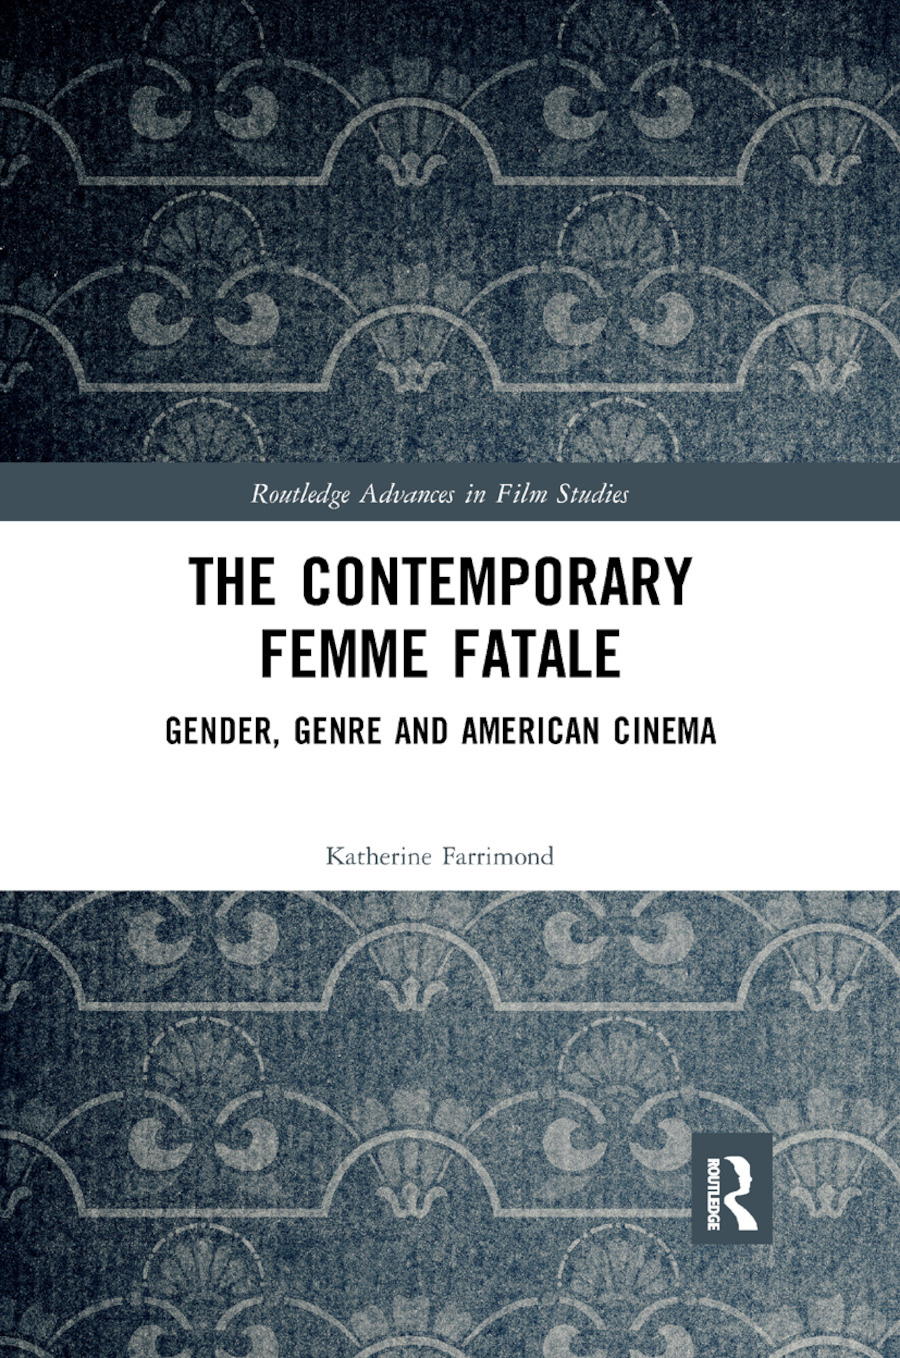 The Contemporary Femme Fatale: Gender, Genre and American Cinema book cover